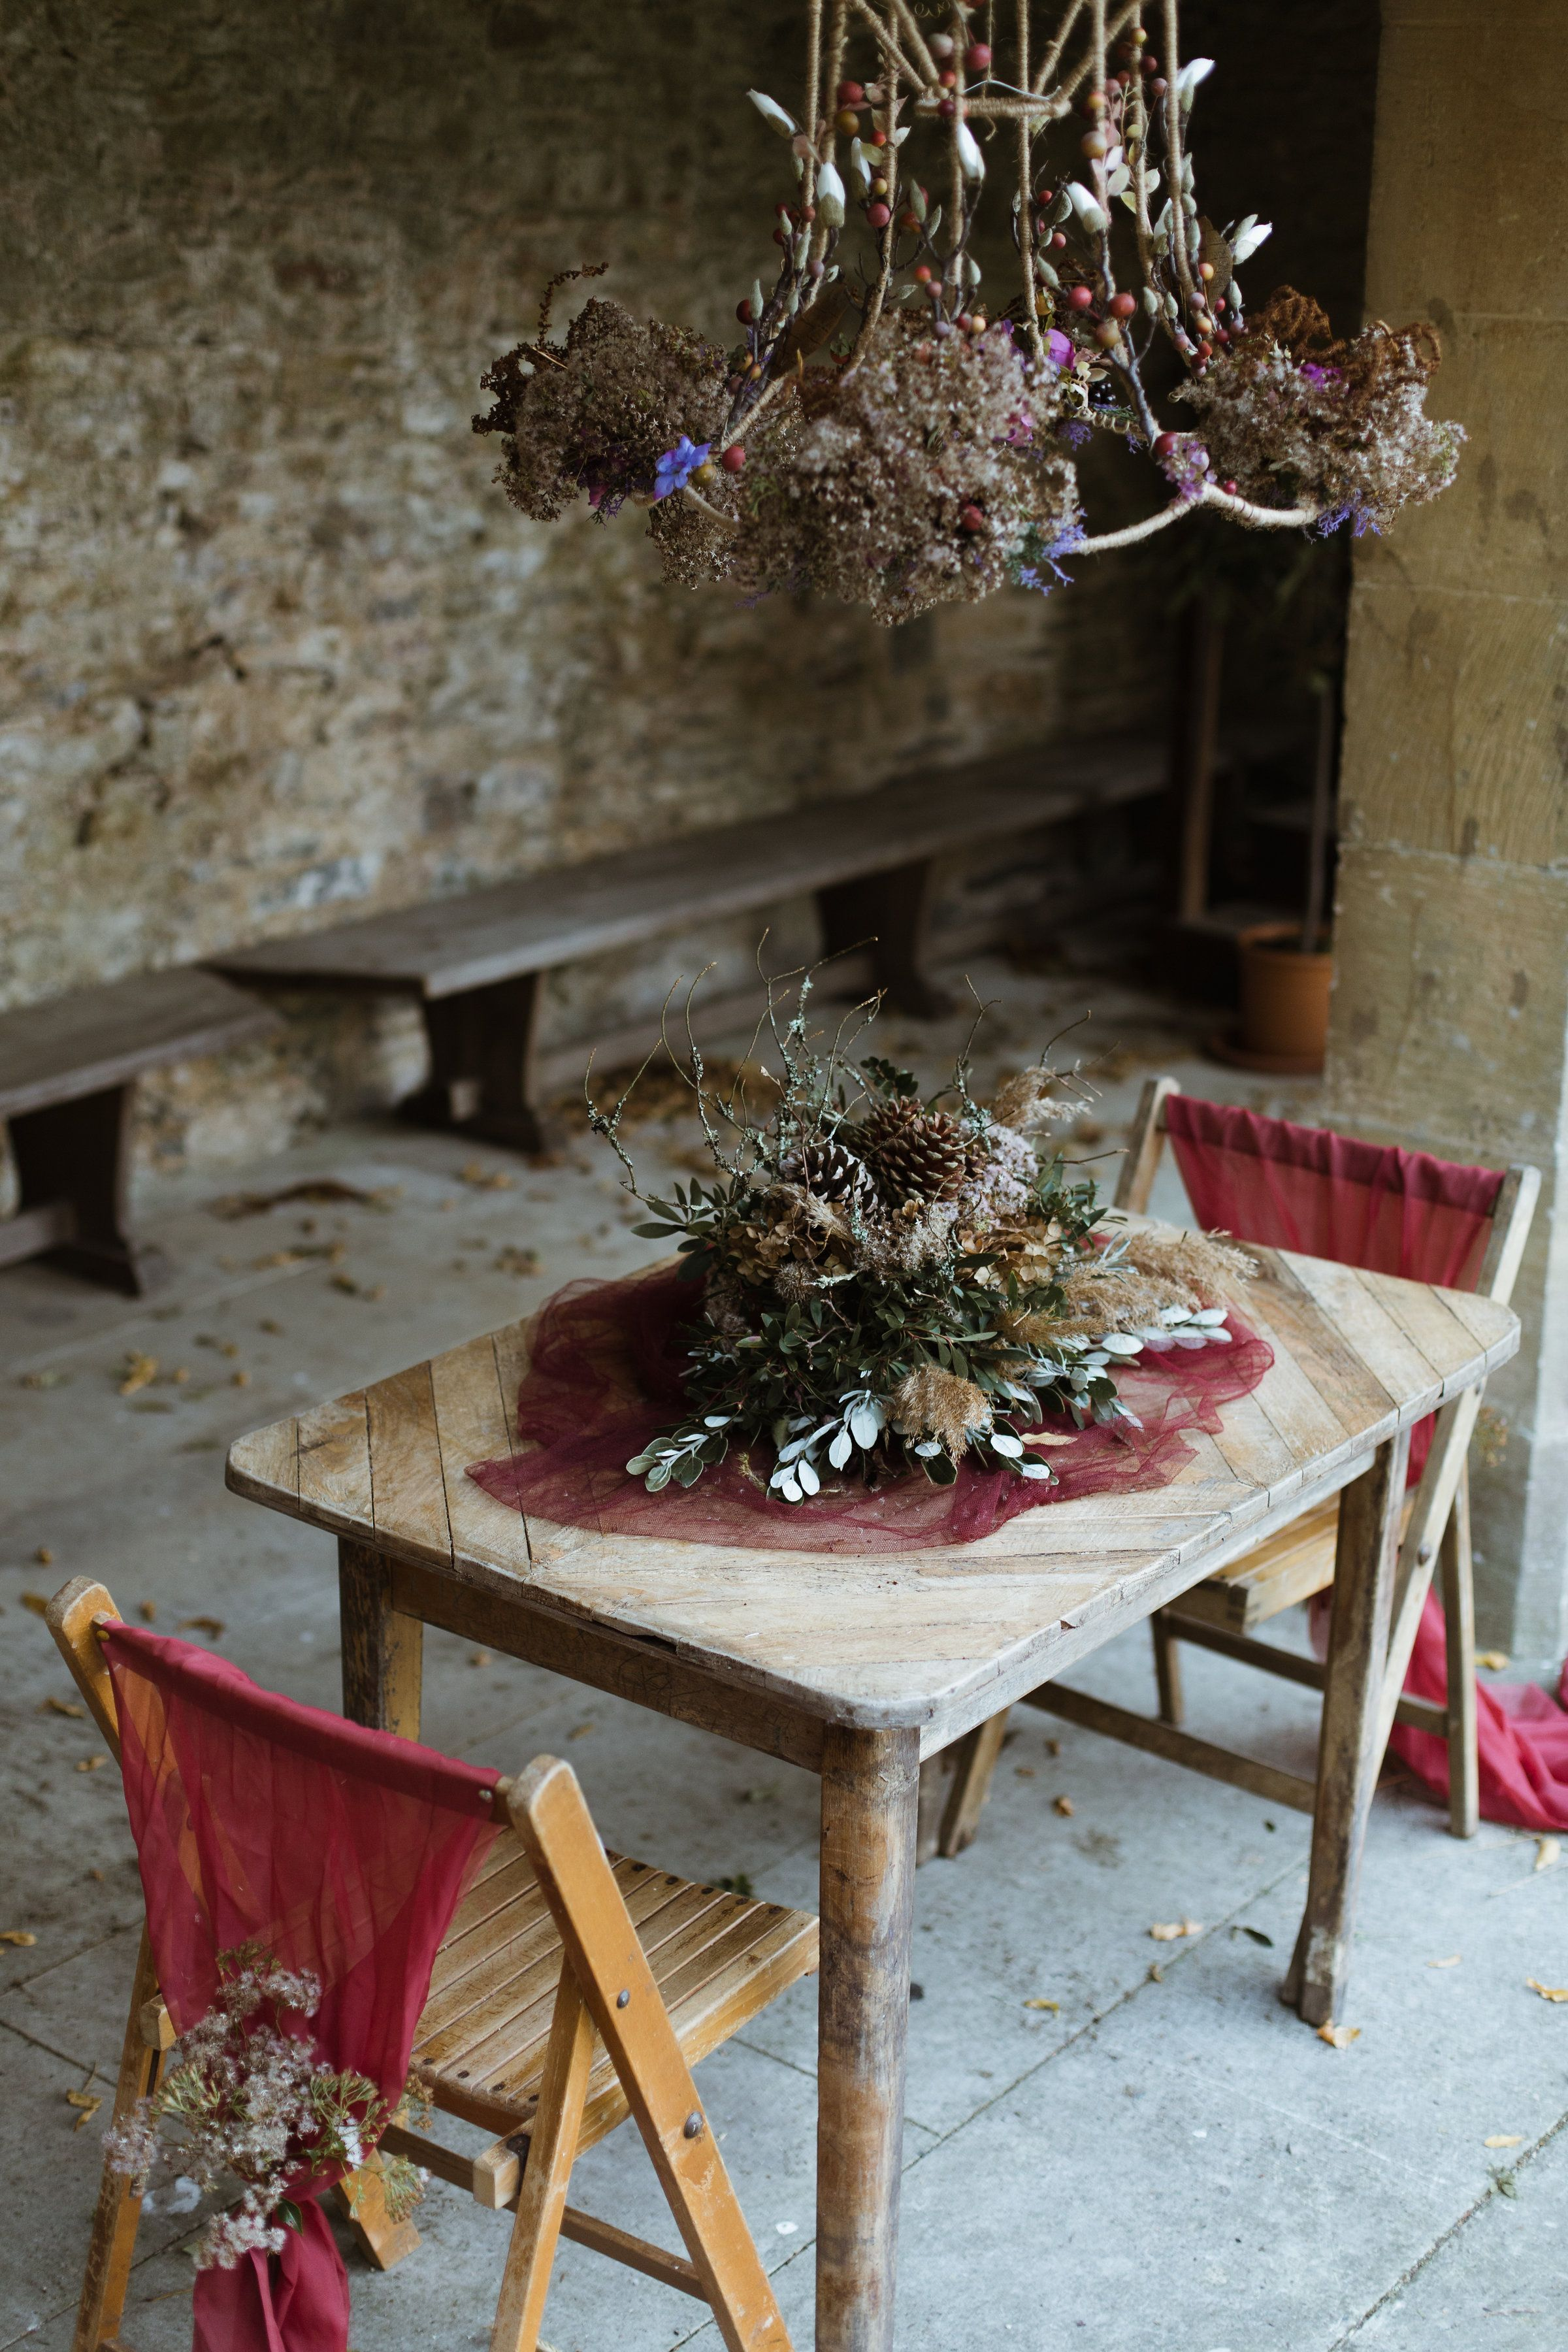 Fall wedding decor ideas  Moss and woodland foliage lampshade above a rustic table Rustic